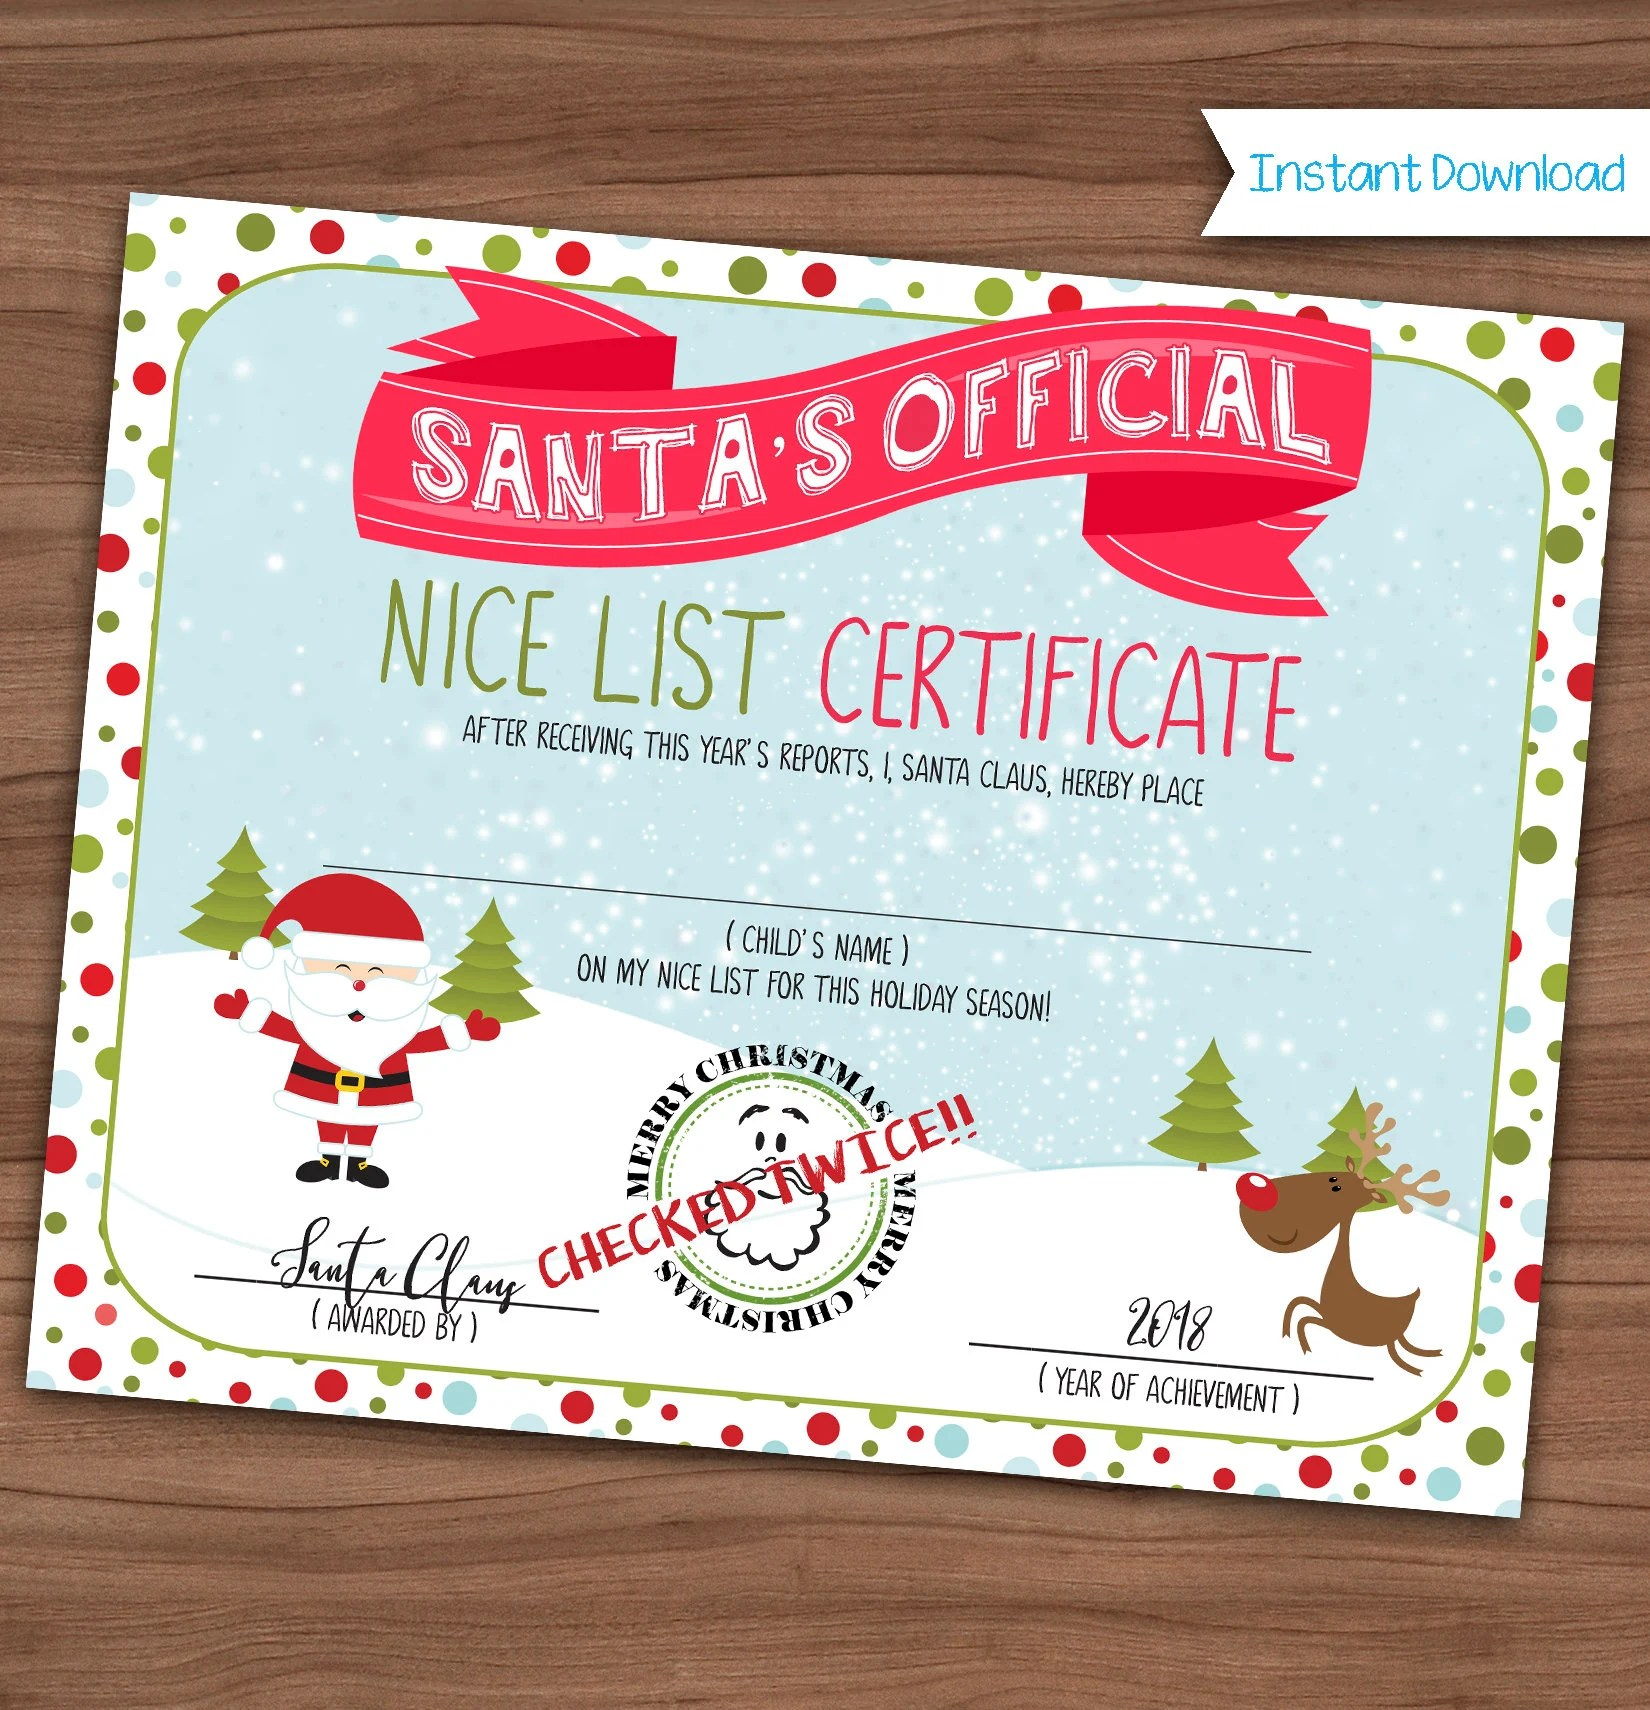 Nice List Certificate Santa Claus Making A List Checking Etsy